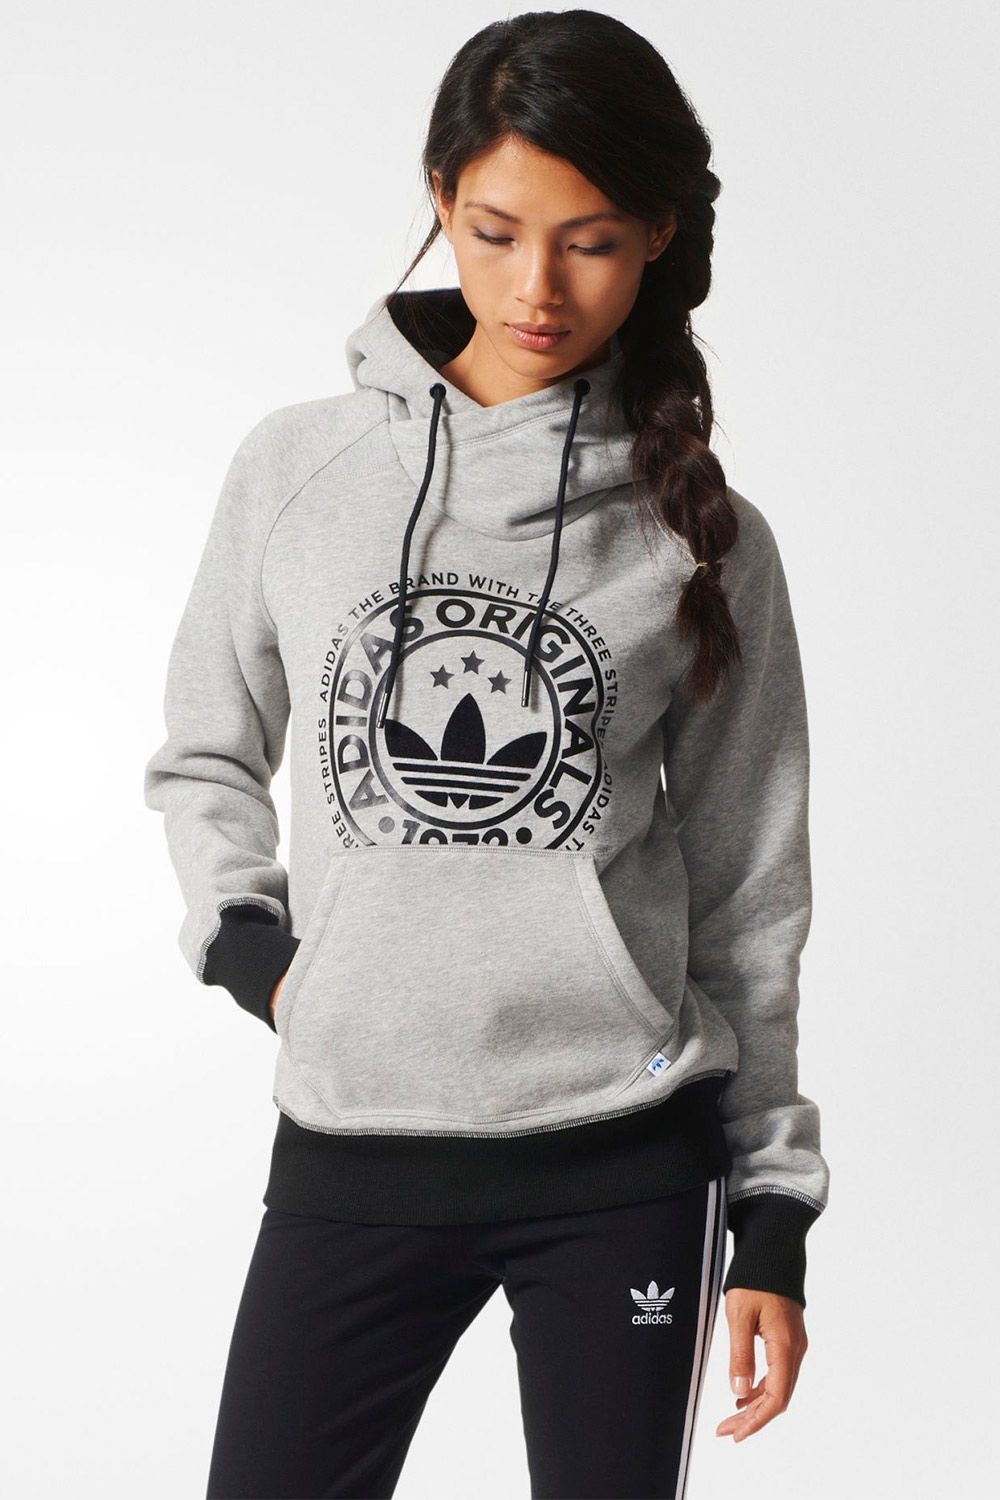 Moletom Adidas Hoodie Fle Heather - BabadoTop Ropa Deportiva 81c98f5605cac